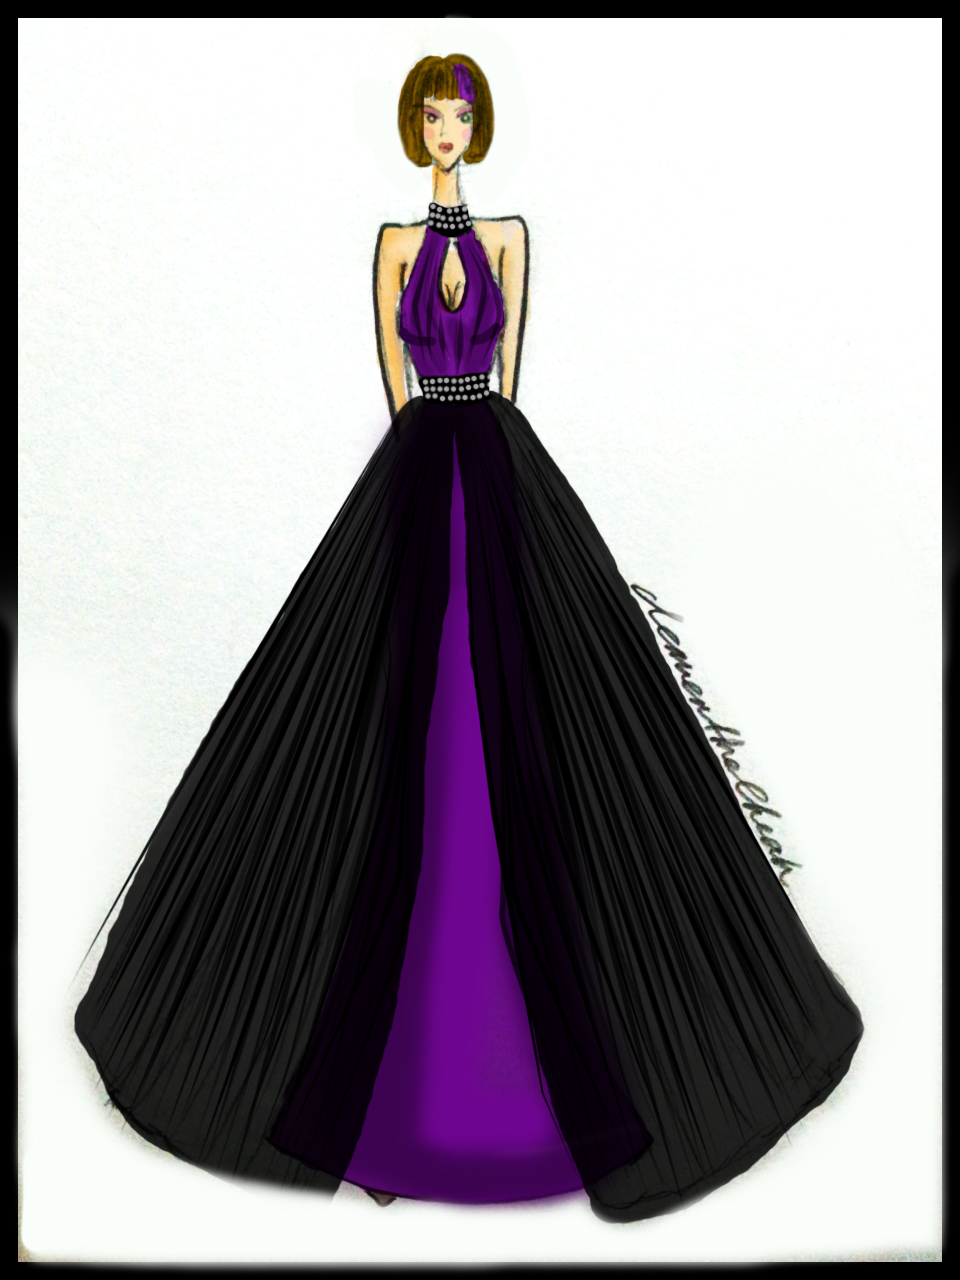 Clementine Cheah Fashion Illustration Purple Ball Gown